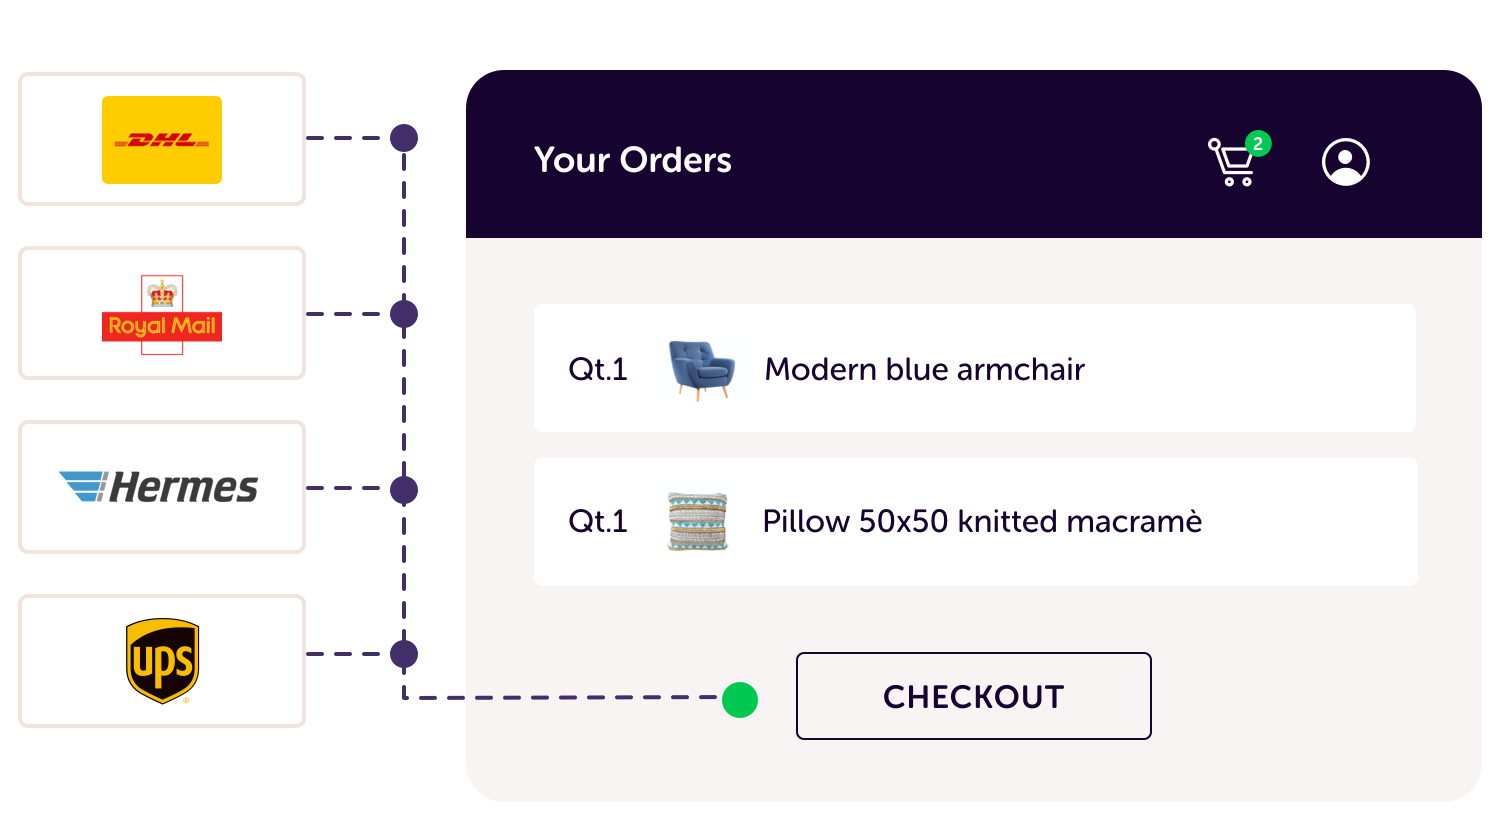 carriers_checkout